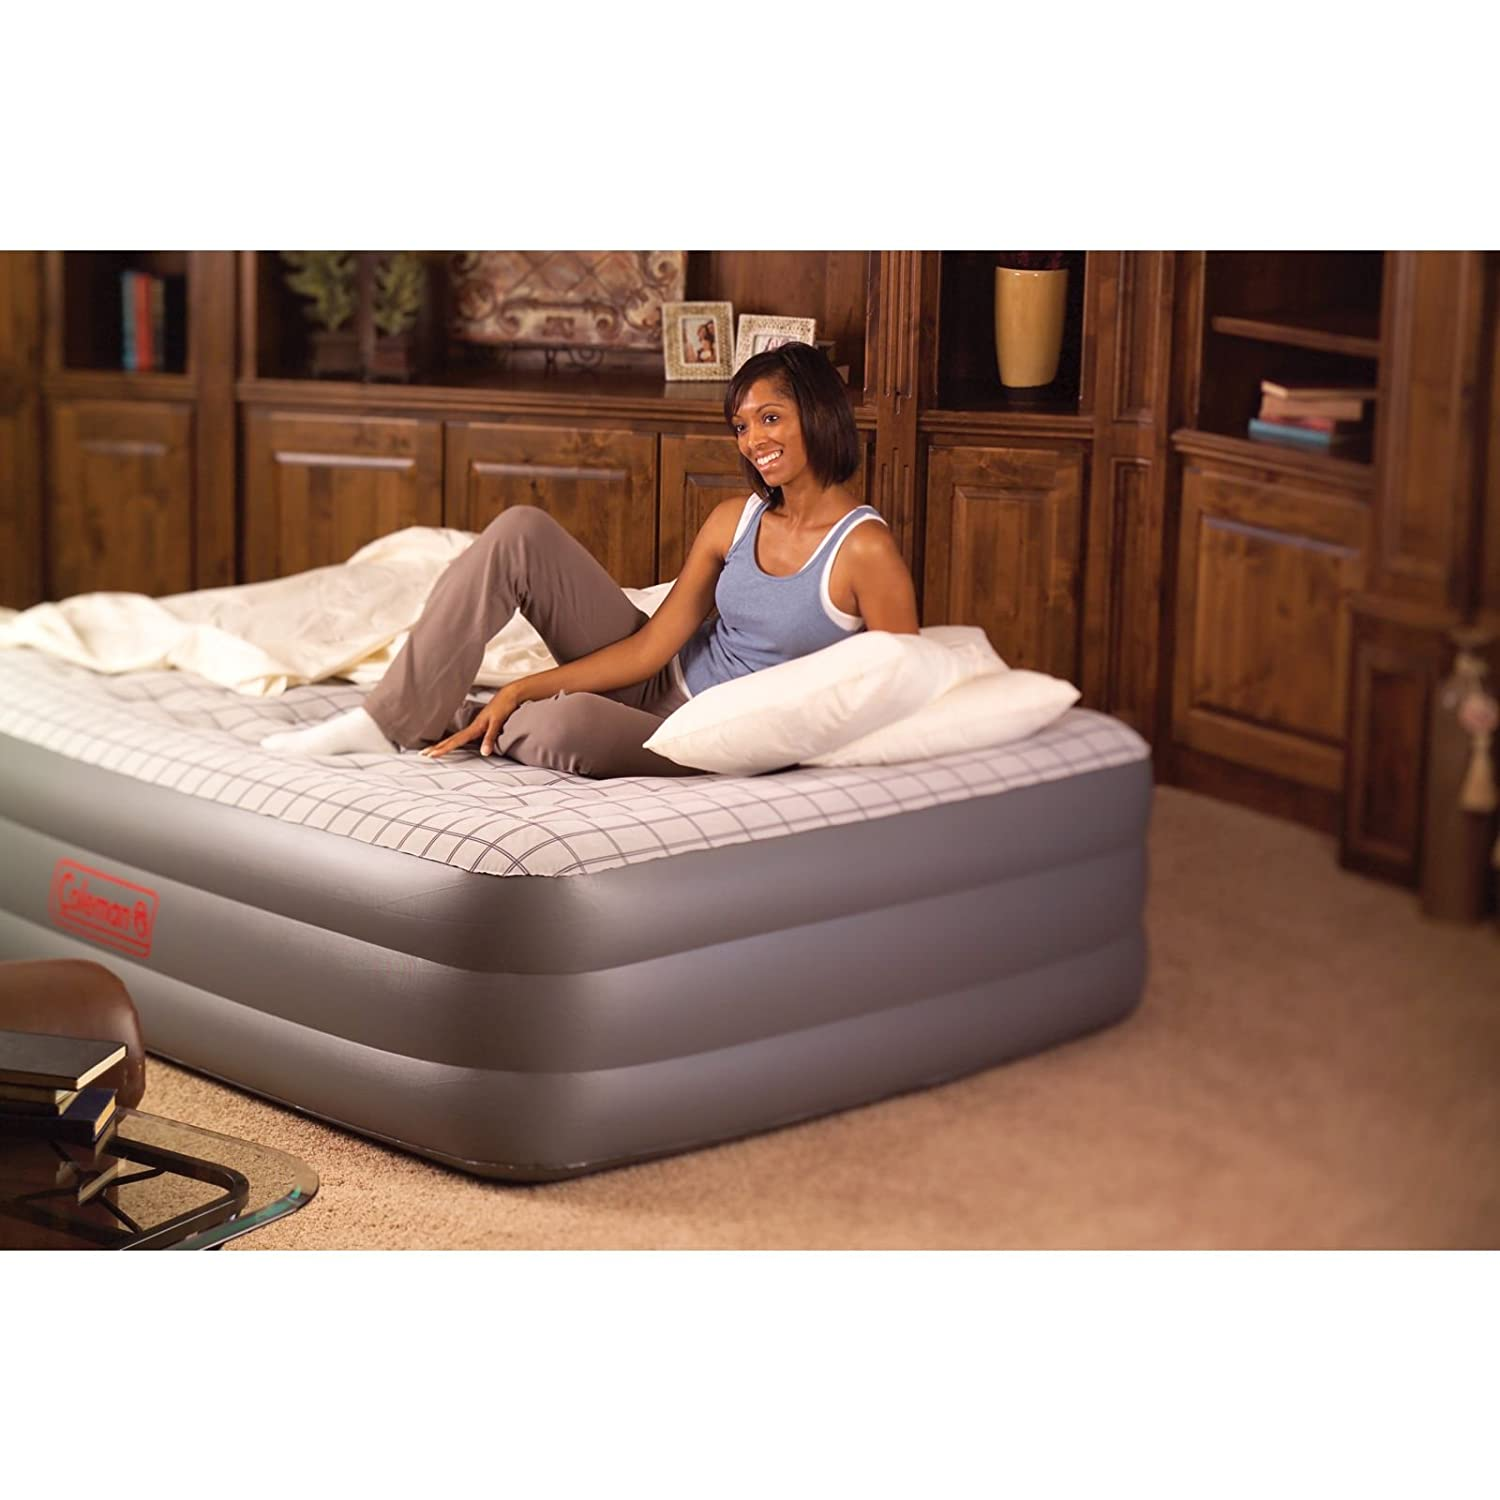 Amazon.com : Coleman Premium Double High SupportRest Airbed w/Built in Pump,  Queen : Camping Air Mattresses : Sports & Outdoors